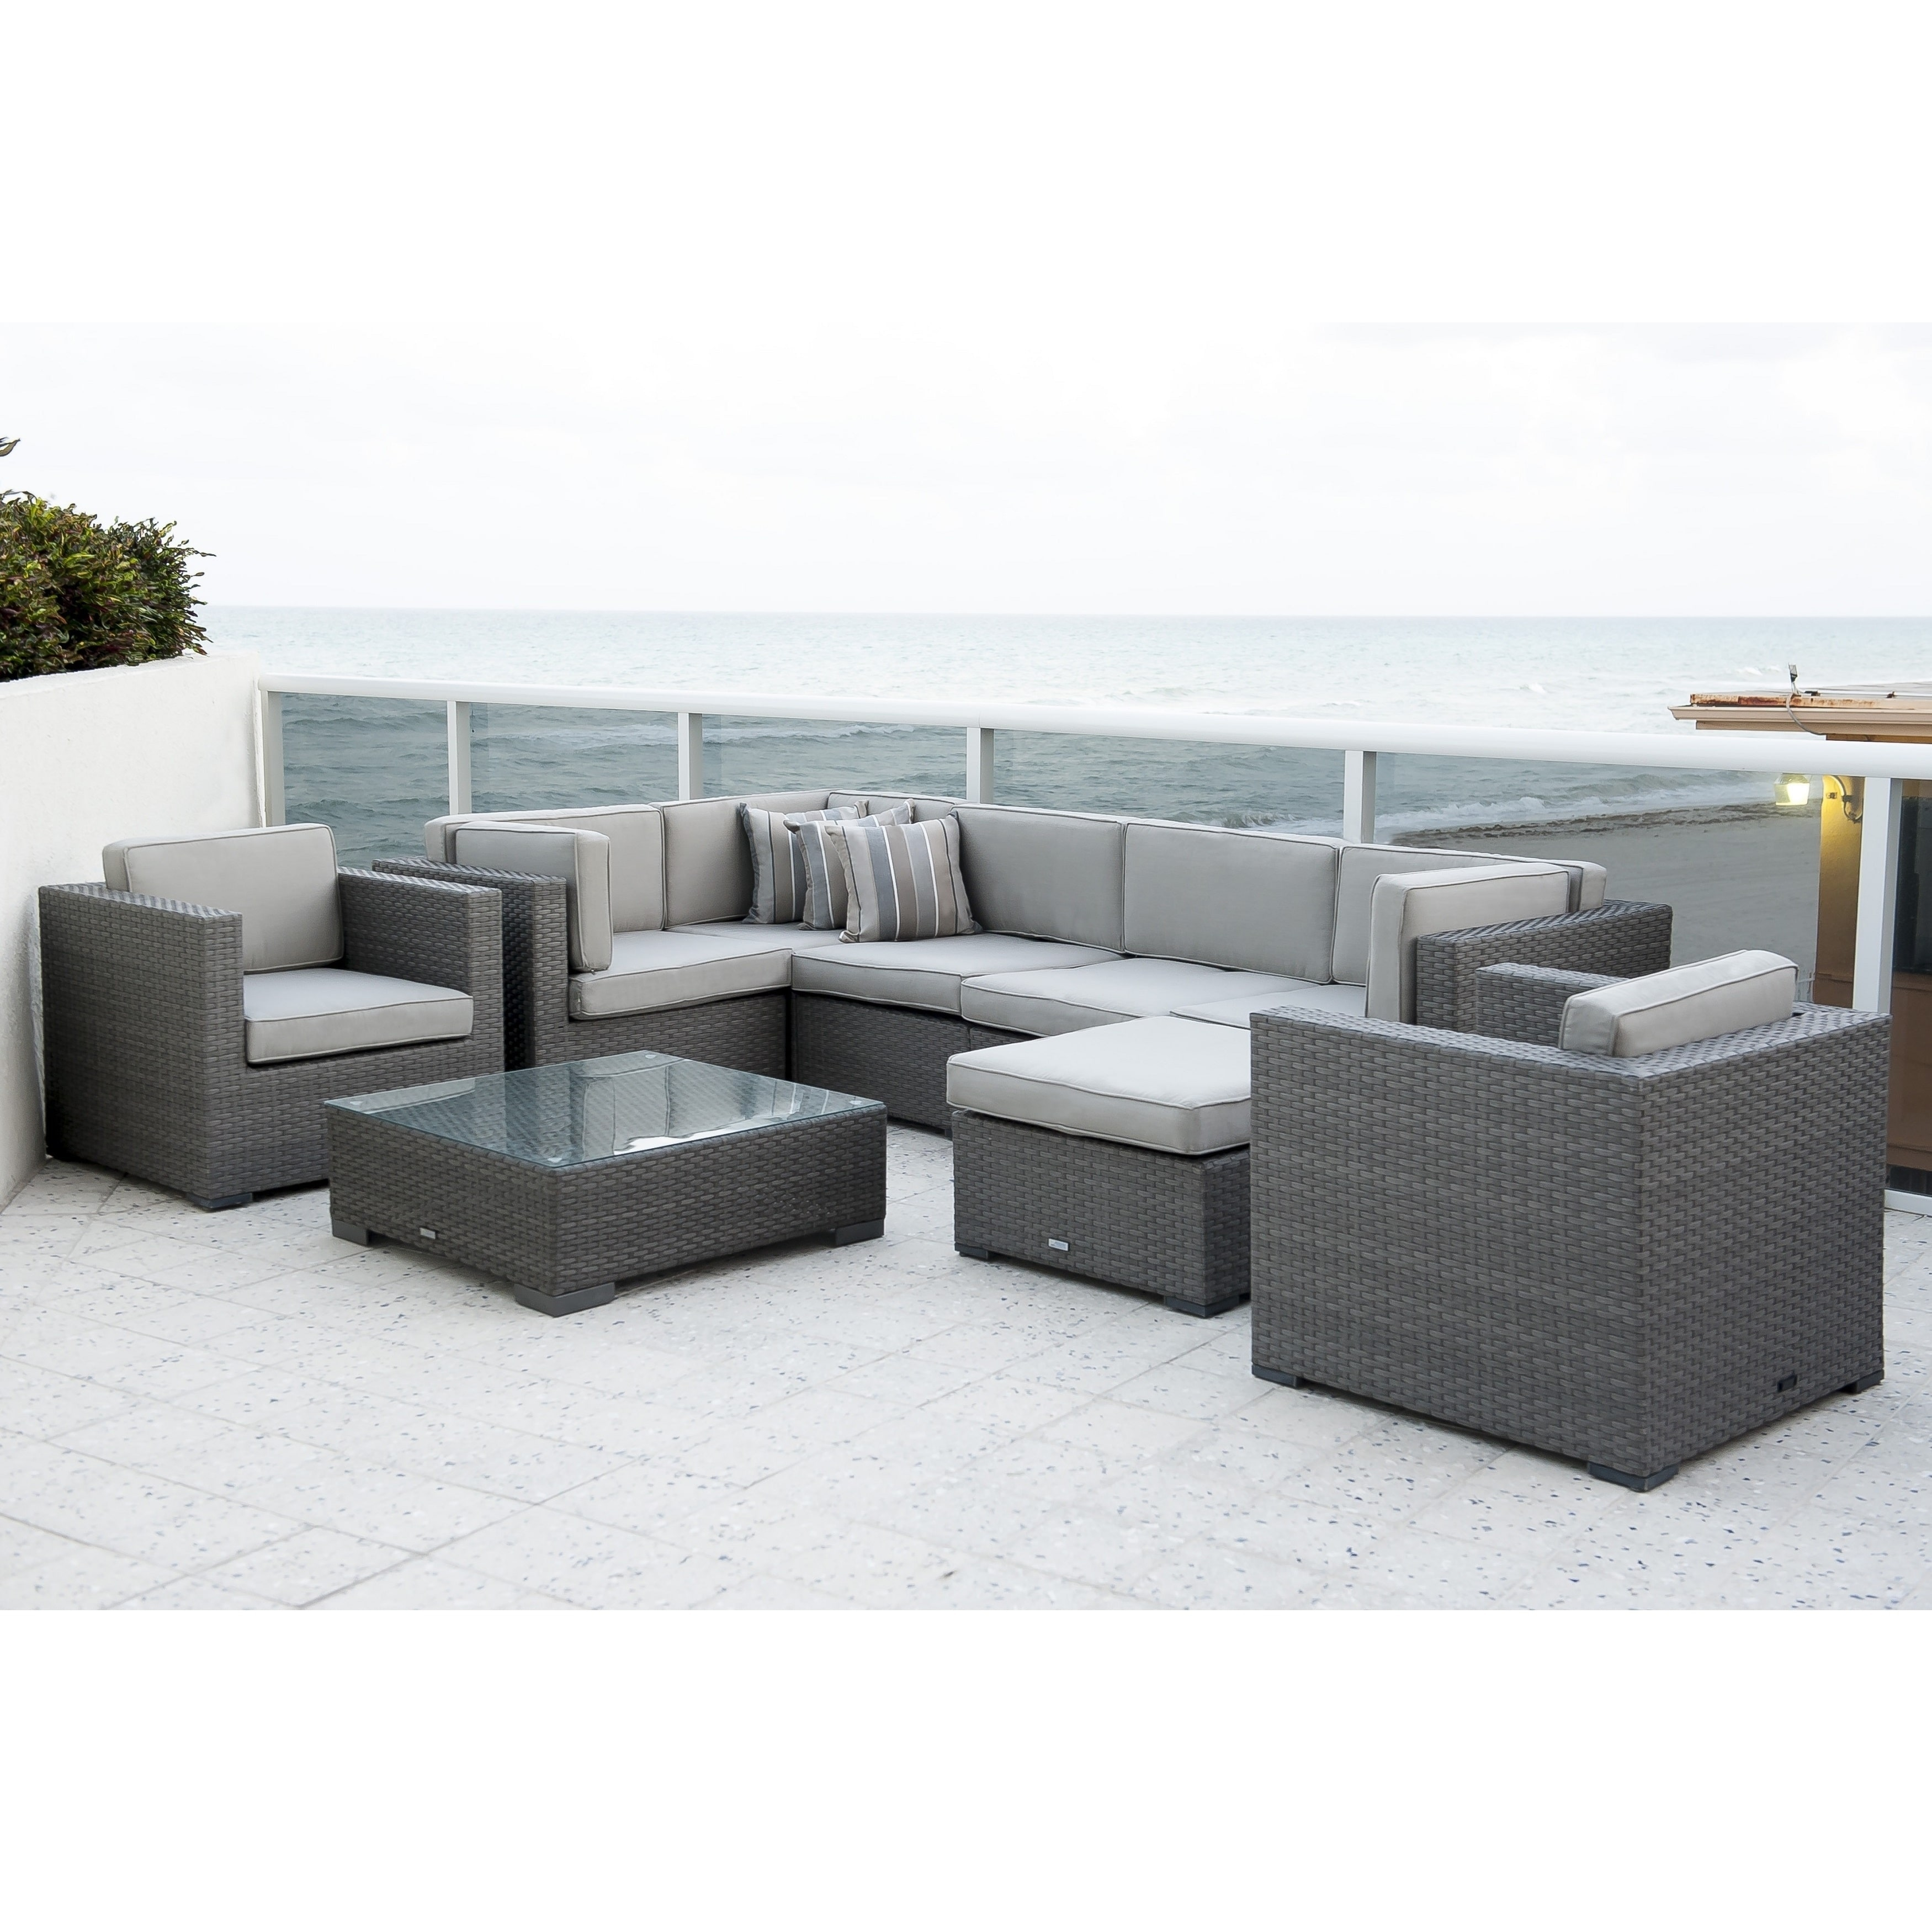 Havenside home fort lauderdale 9 piece sectional set with sunbrella cushions